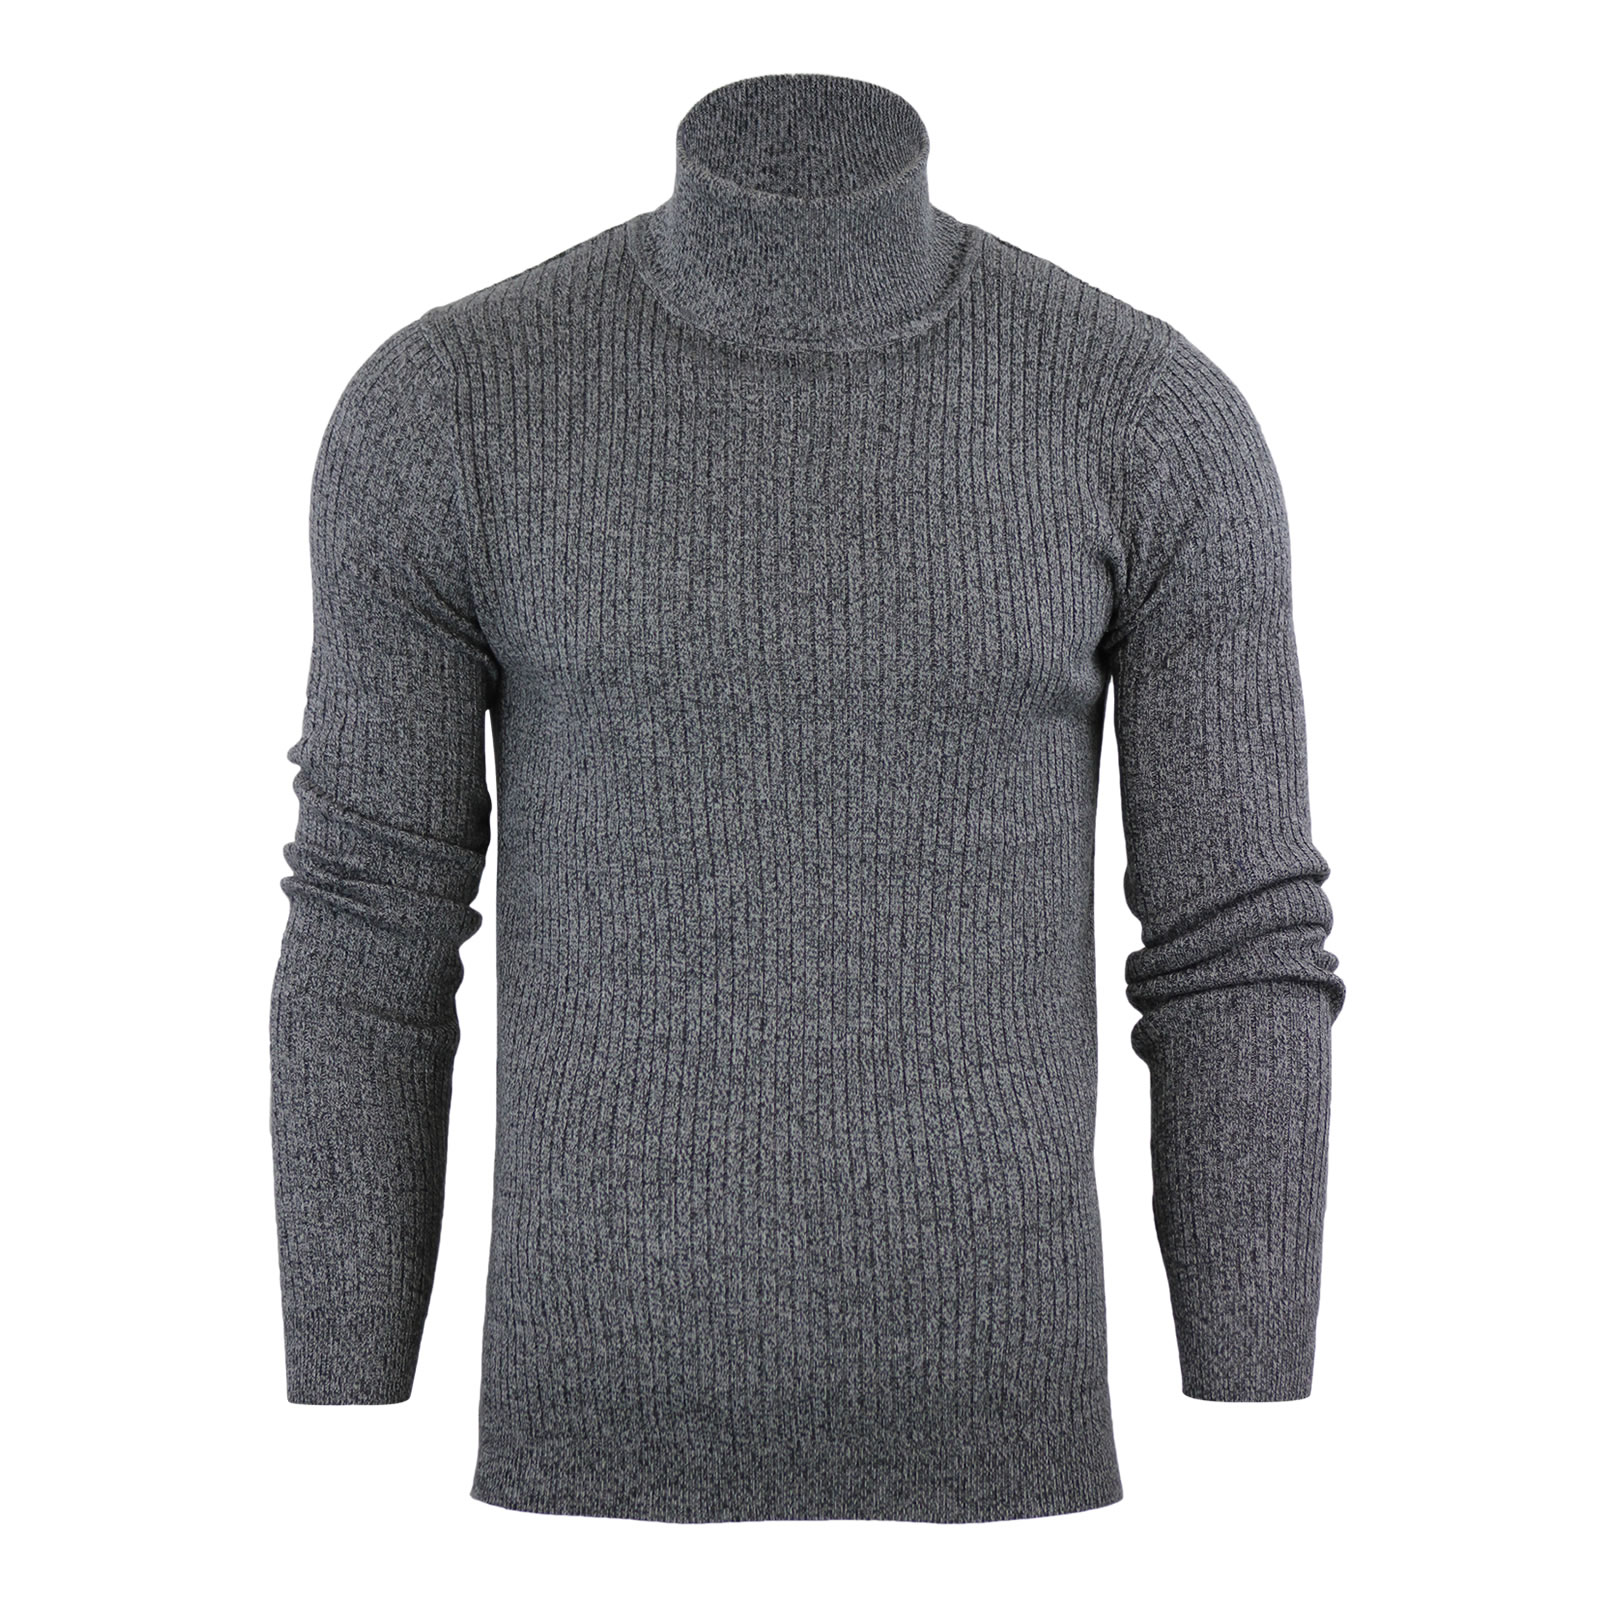 Find Roll neck from the Mens department at Debenhams. Shop a wide range of Jumpers & cardigans products and more at our online shop today.